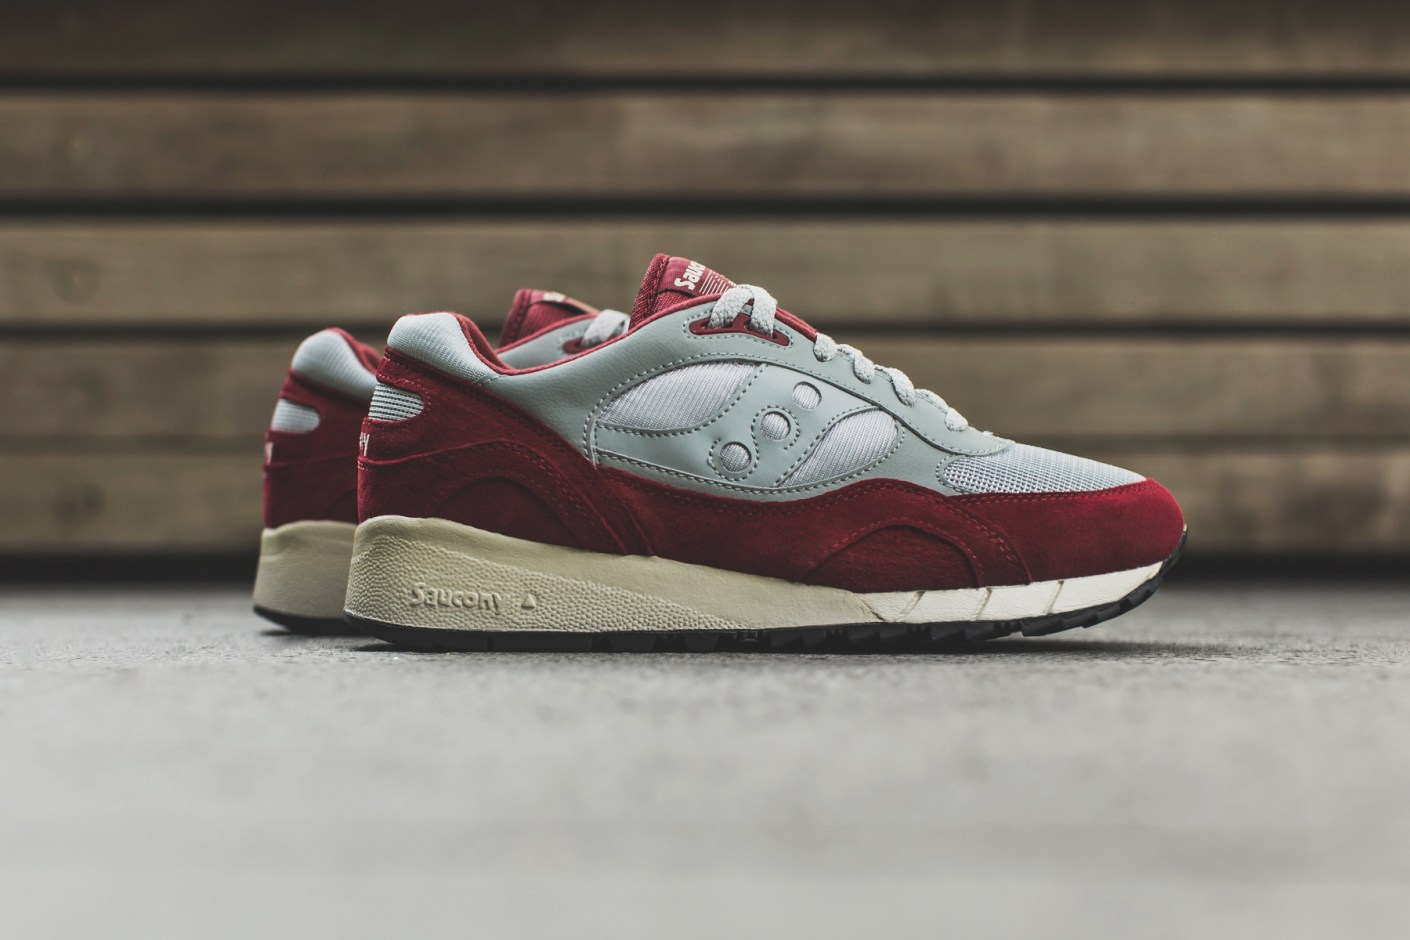 Image of A Closer Look at the Saucony Shadow 6000 Grey/Red